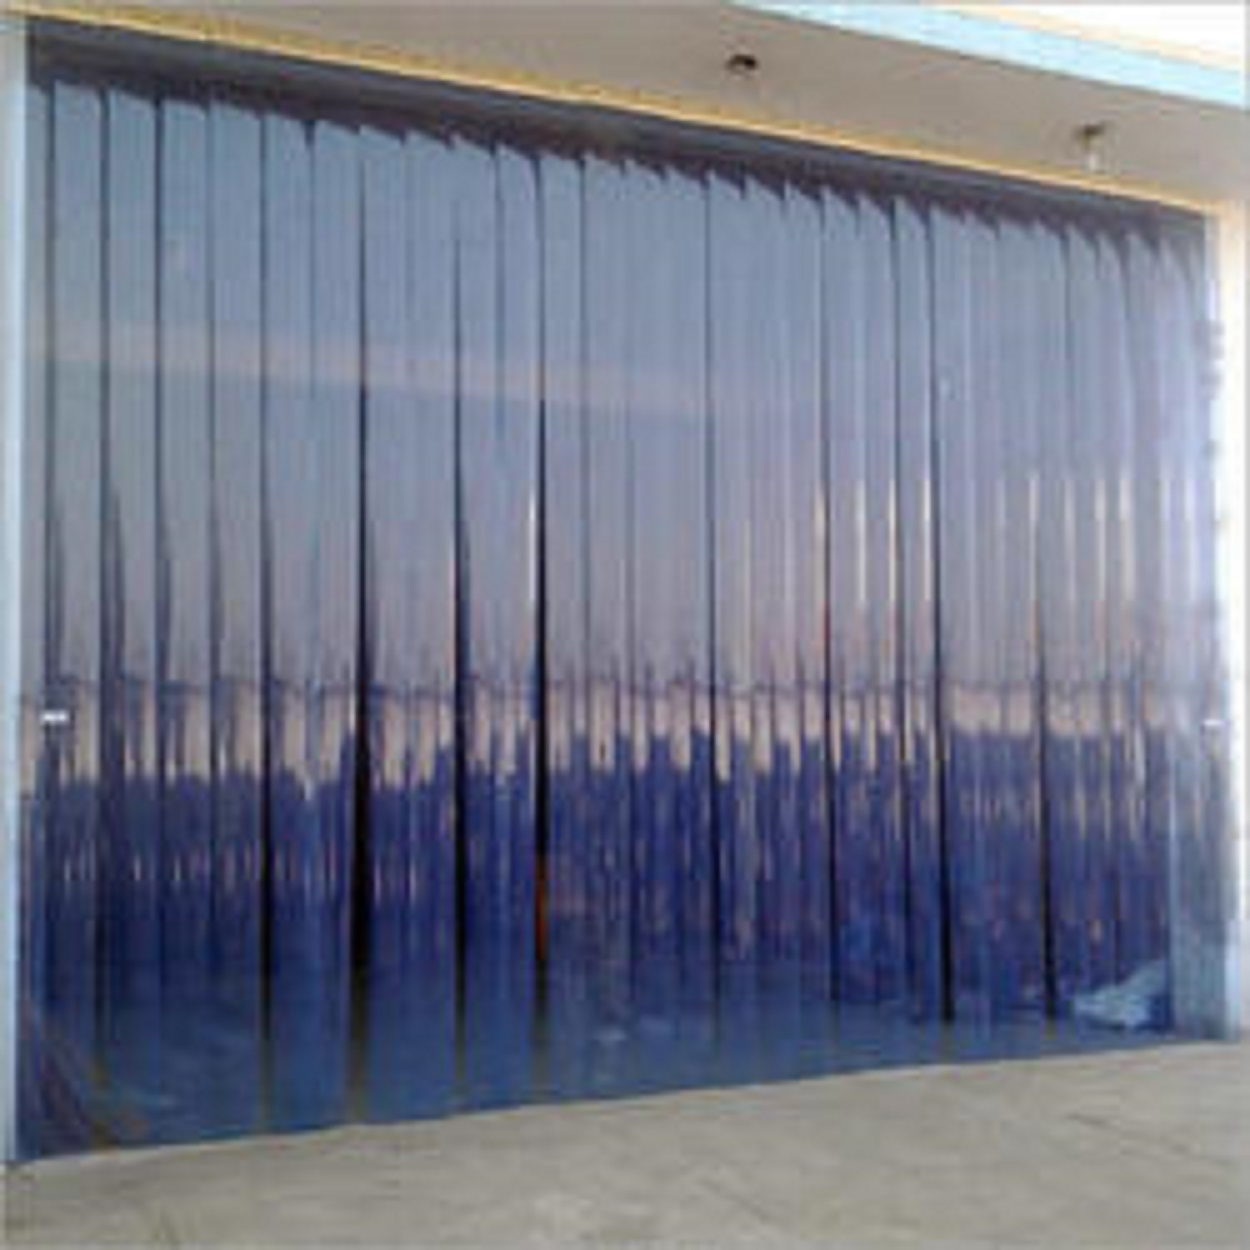 Commercial Curtains - We use these to cover the doghouse doorways